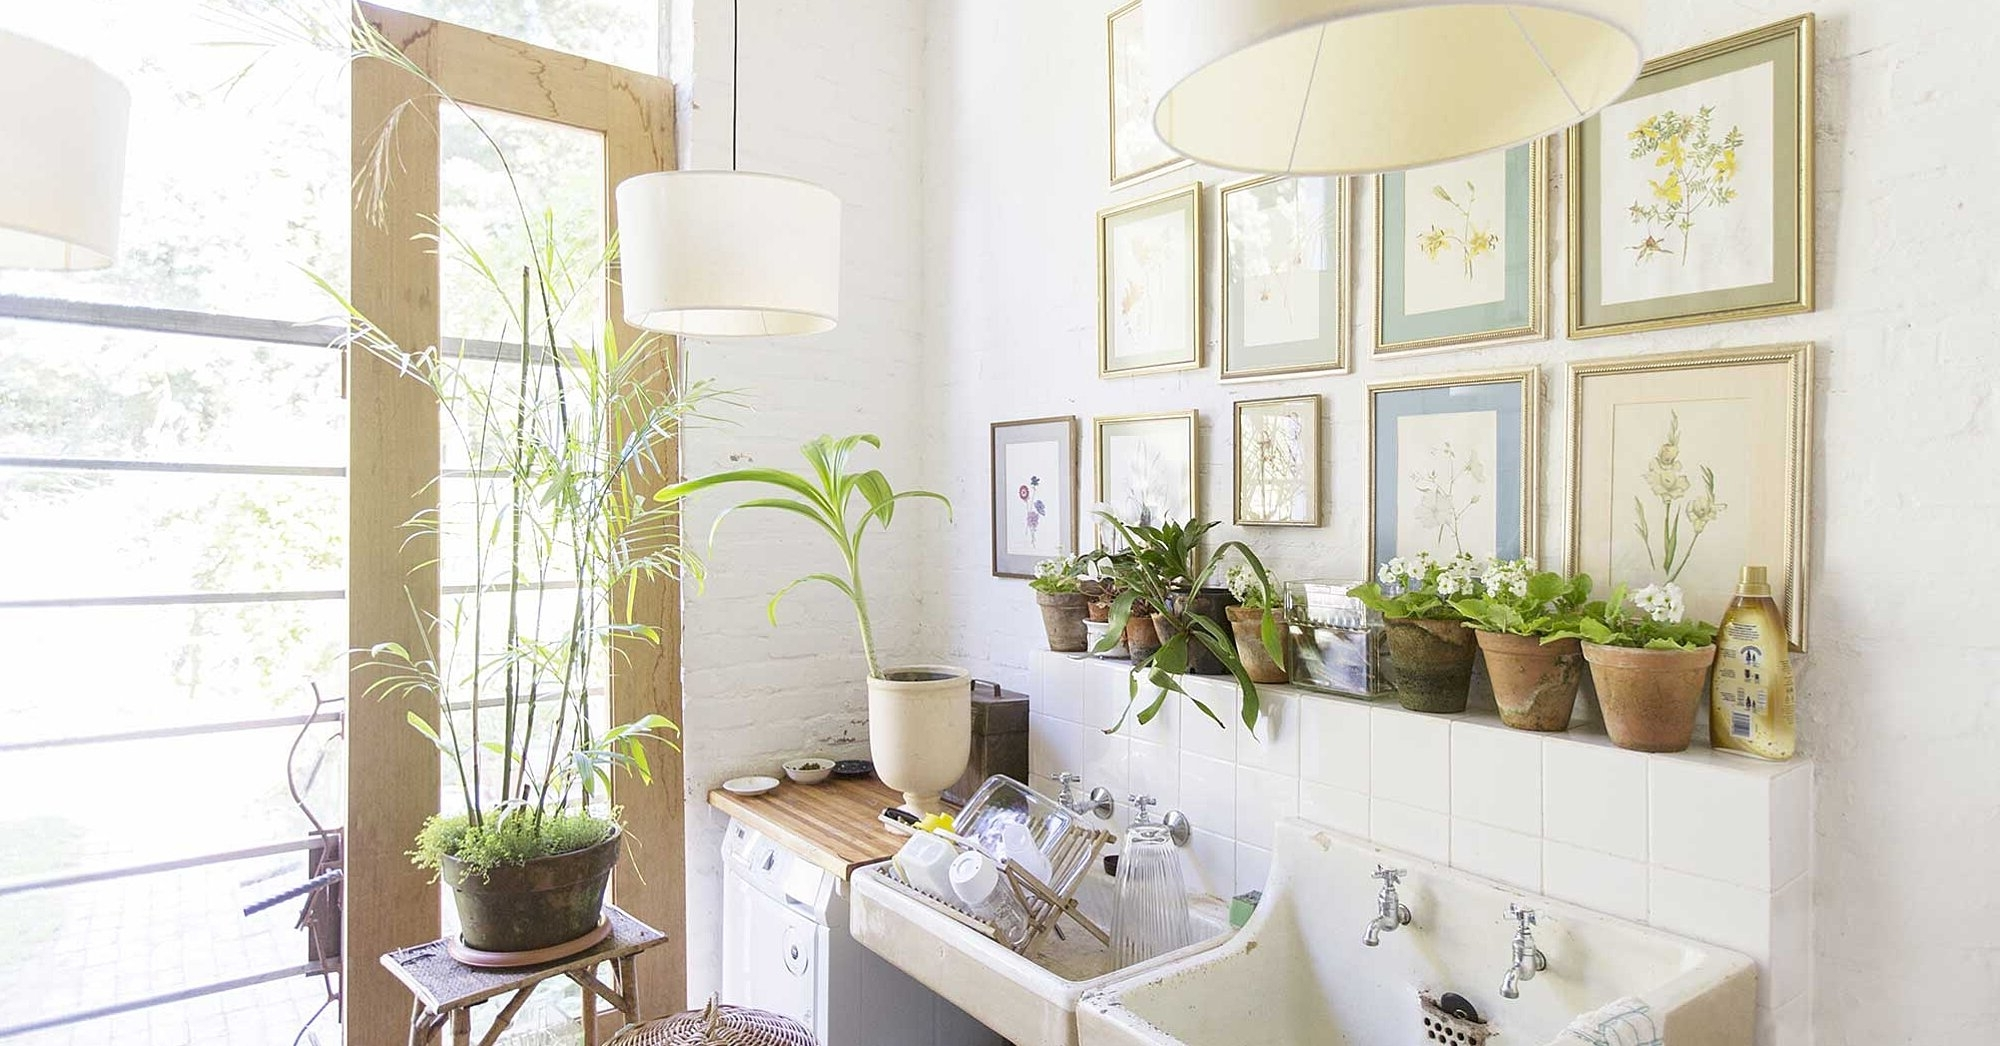 15 Rules For Every First Time Airbnb Host | Travel + Leisure 10+ Airbnb Bathroom Ideas